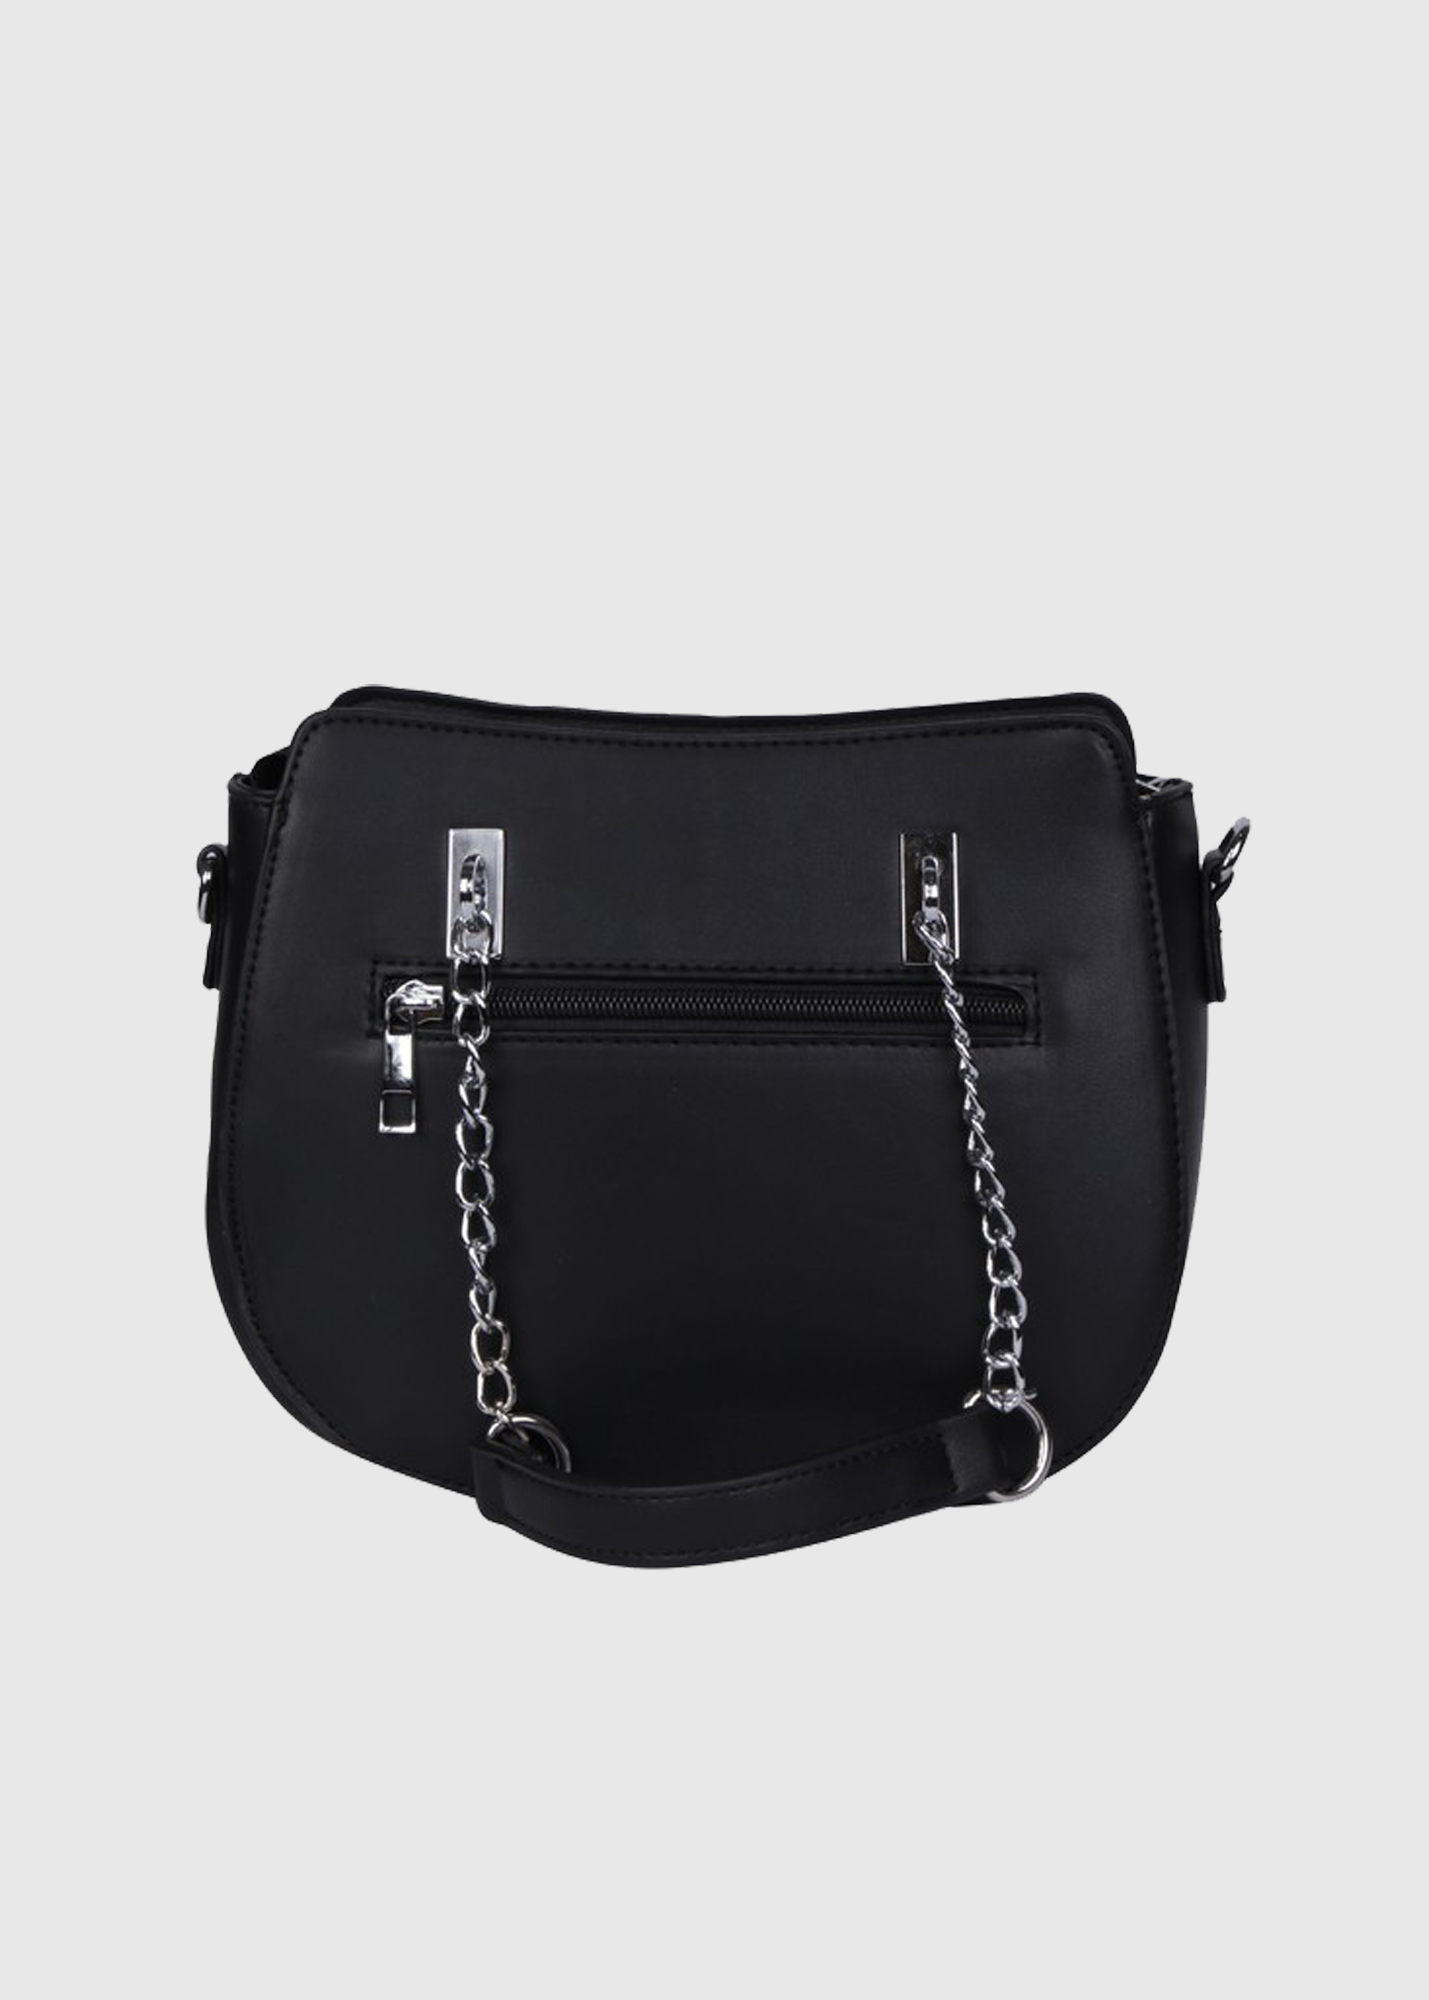 Photo №1 Giacinta black bag with chain strap